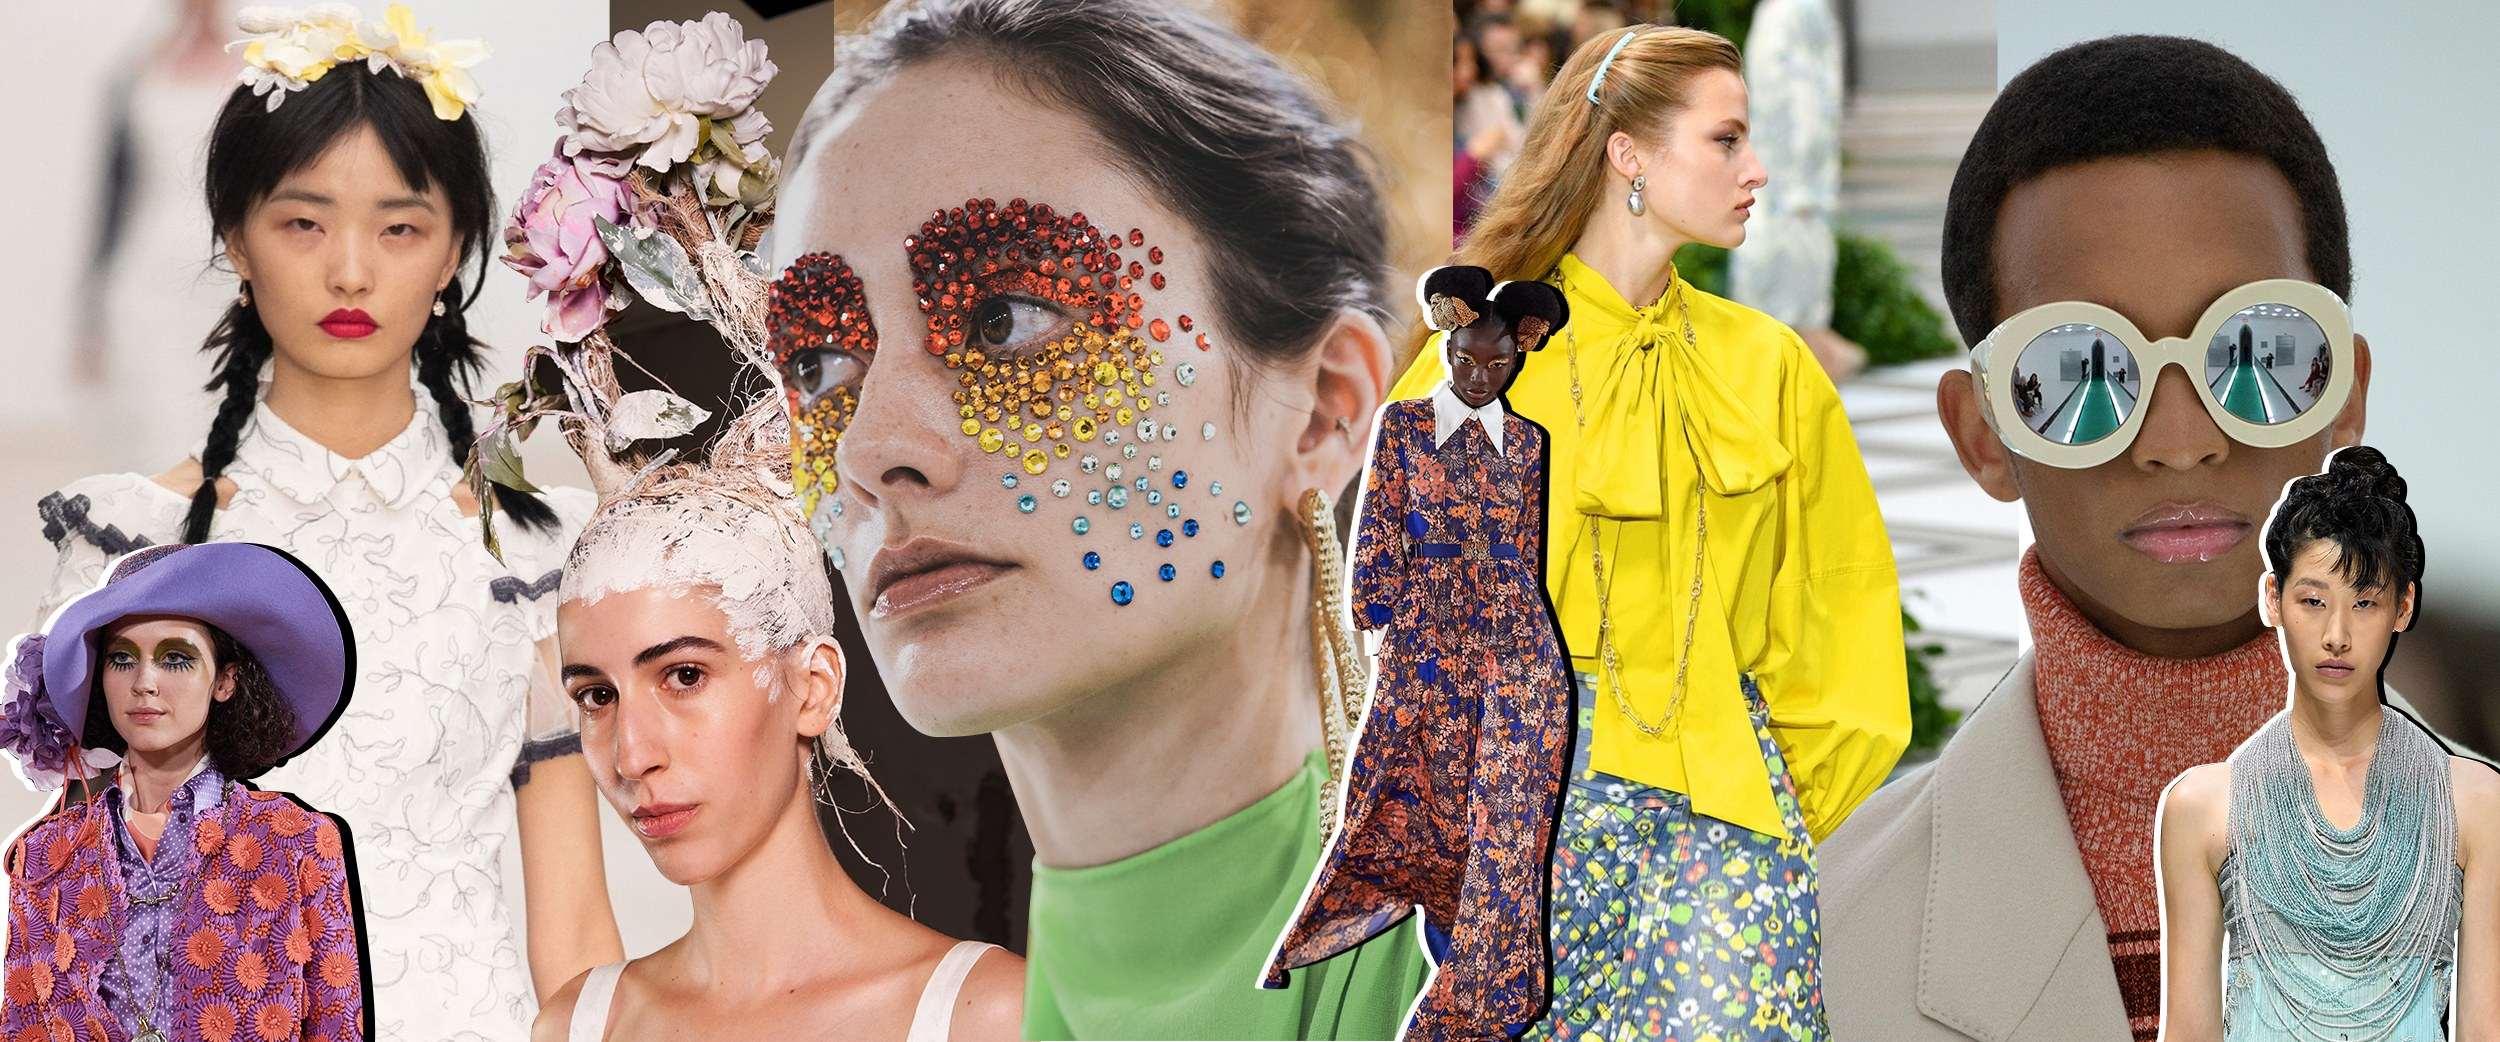 The Top 7 Beauty Trends From the Spring 2020 Runways